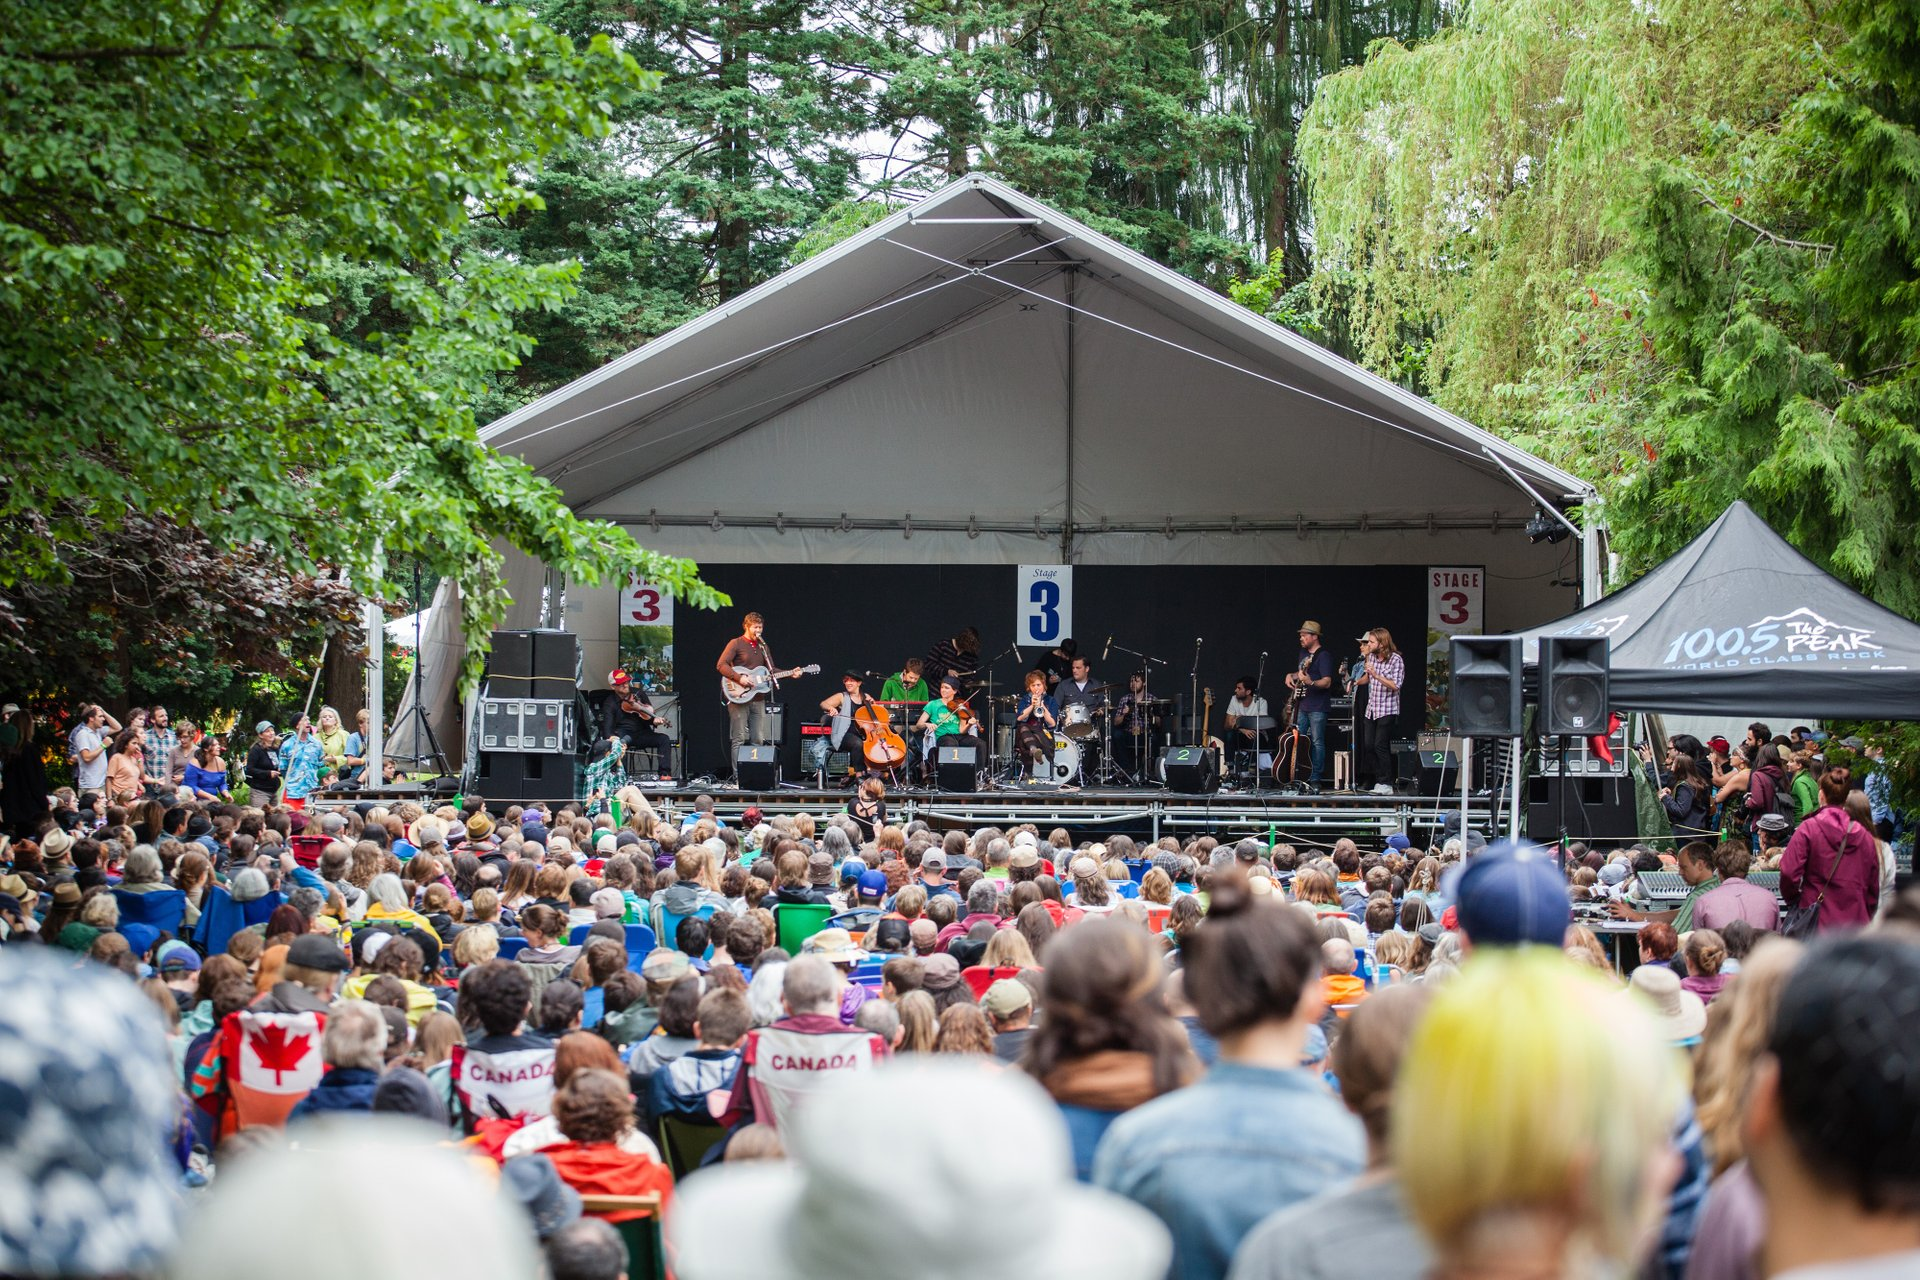 Best time to see Vancouver Folk Music Festival in Vancouver 2020